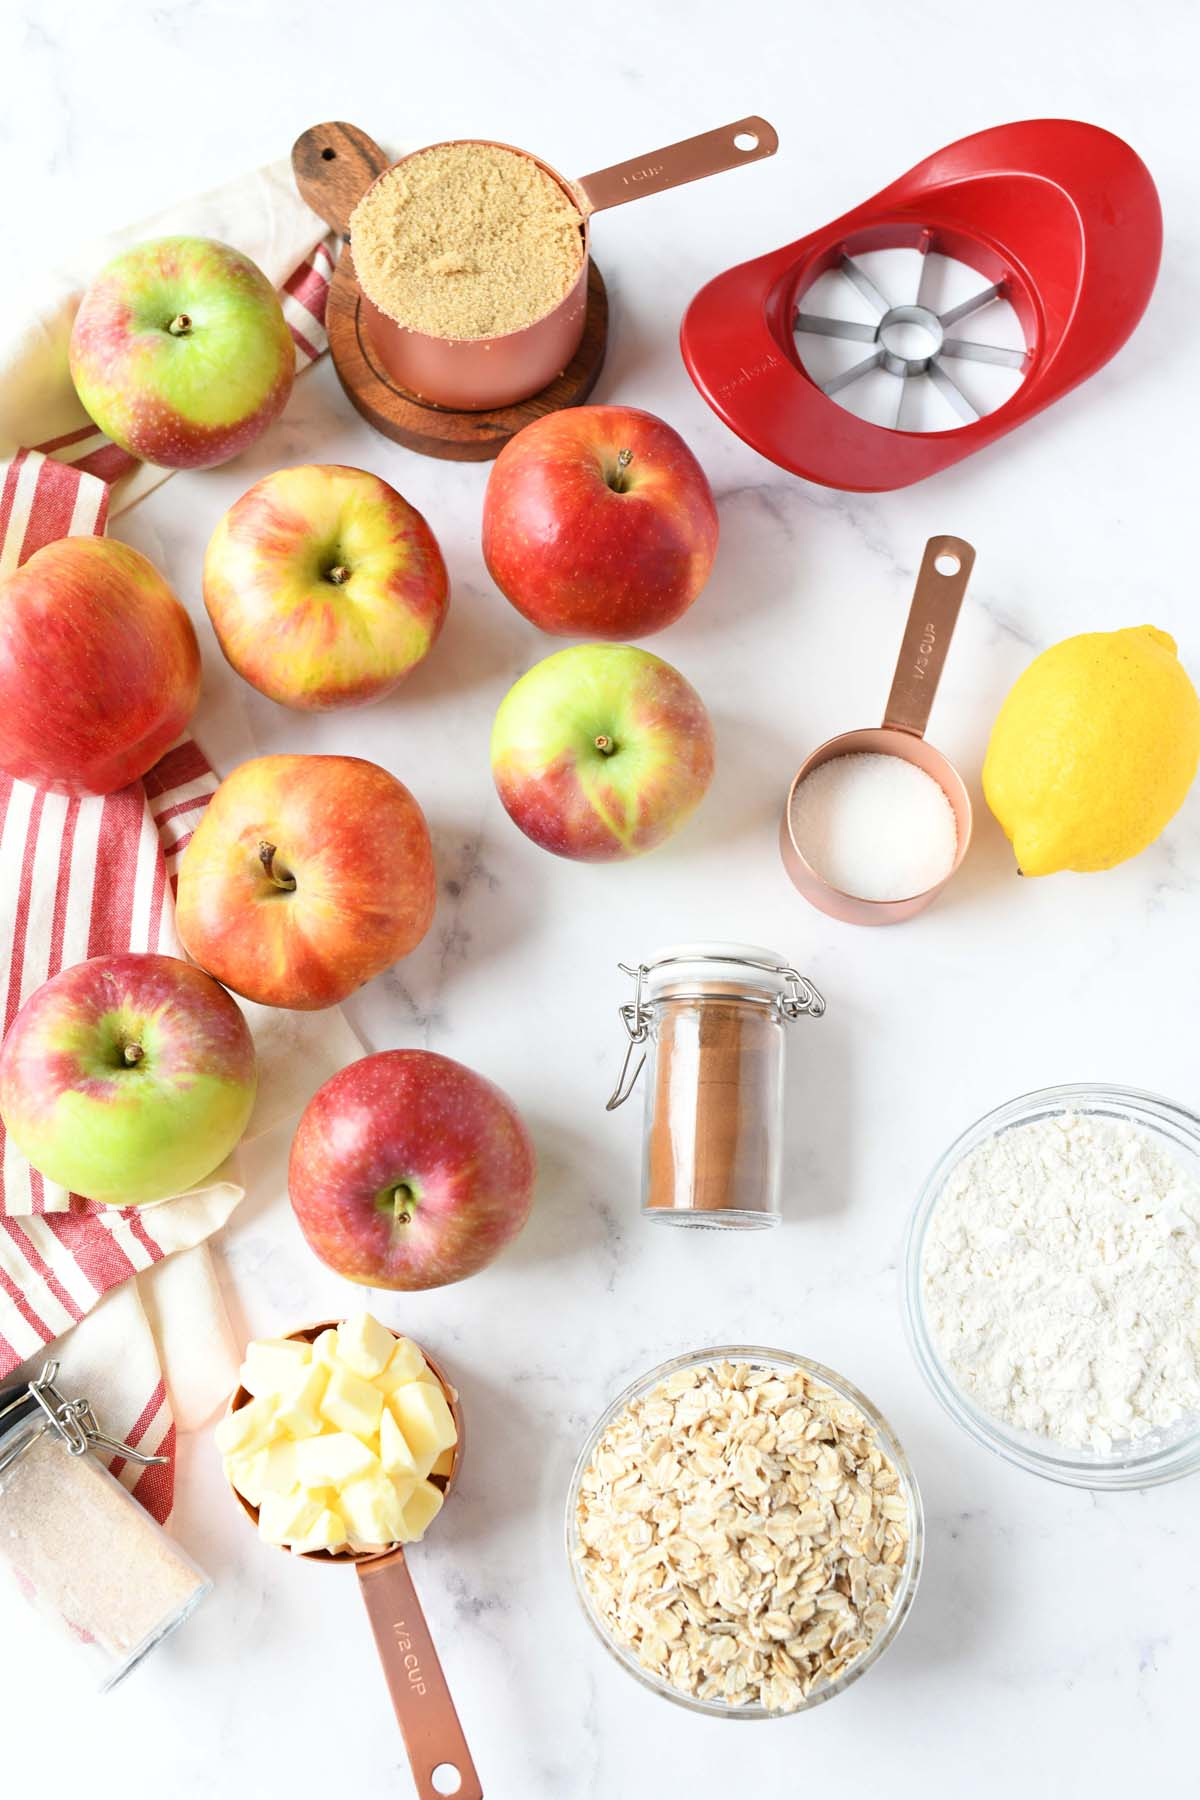 Apple Crisp Ingredients on a white table.